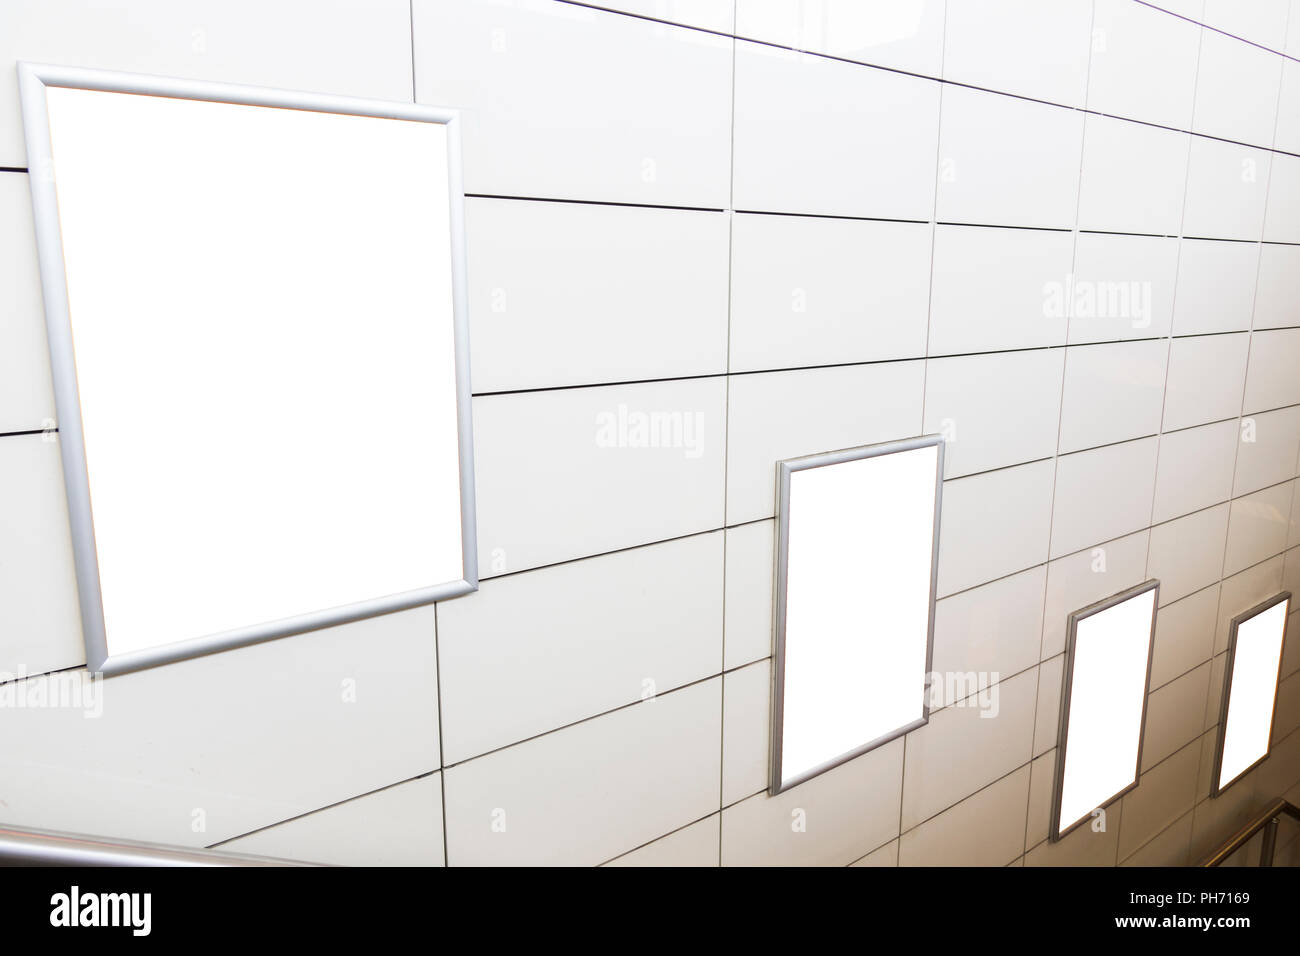 Four big vertical / portrait orientation blank billboard with stairs background - Stock Image